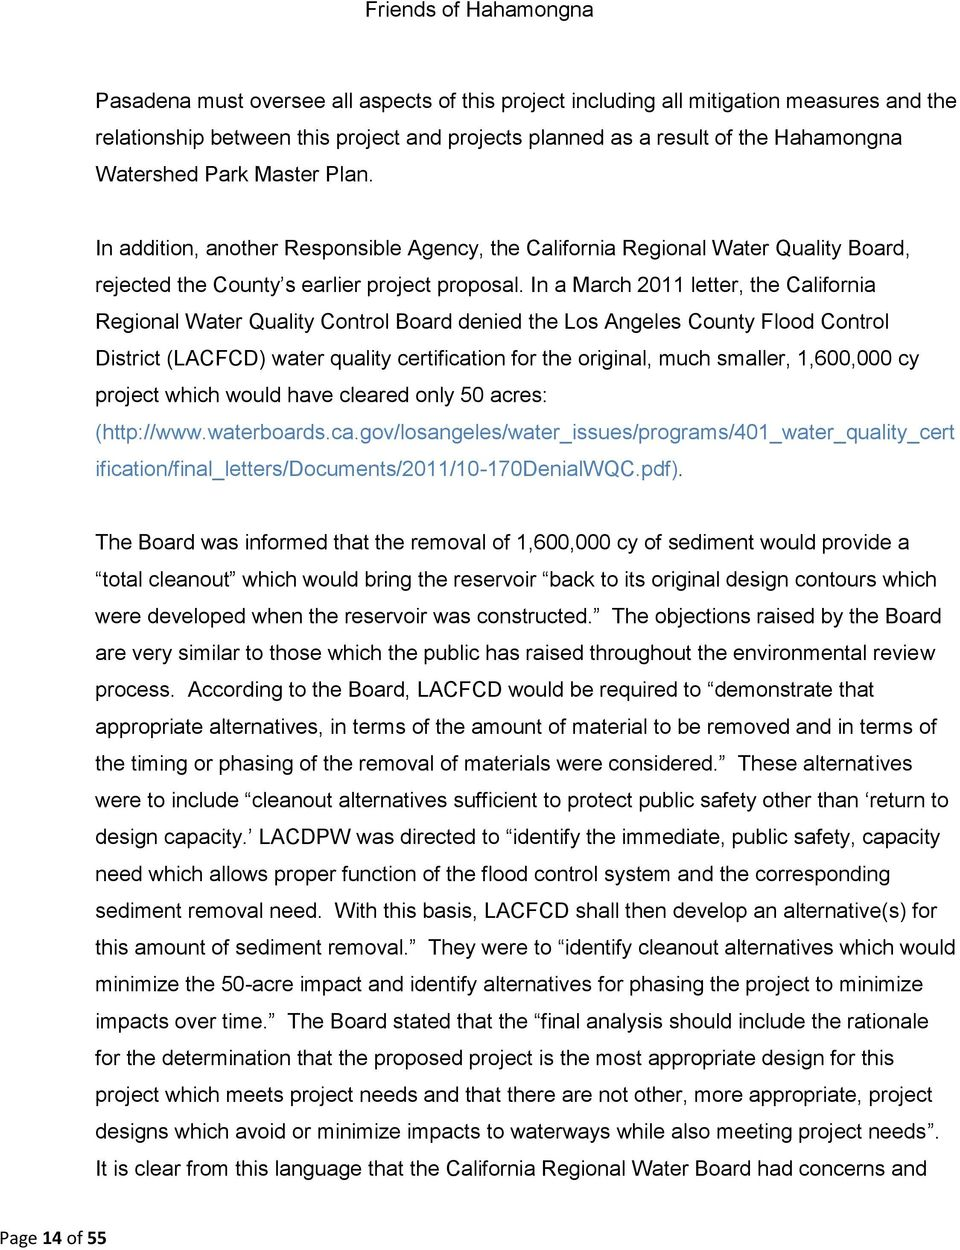 In a March 2011 letter, the California Regional Water Quality Control Board denied the Los Angeles County Flood Control District (LACFCD) water quality certification for the original, much smaller,